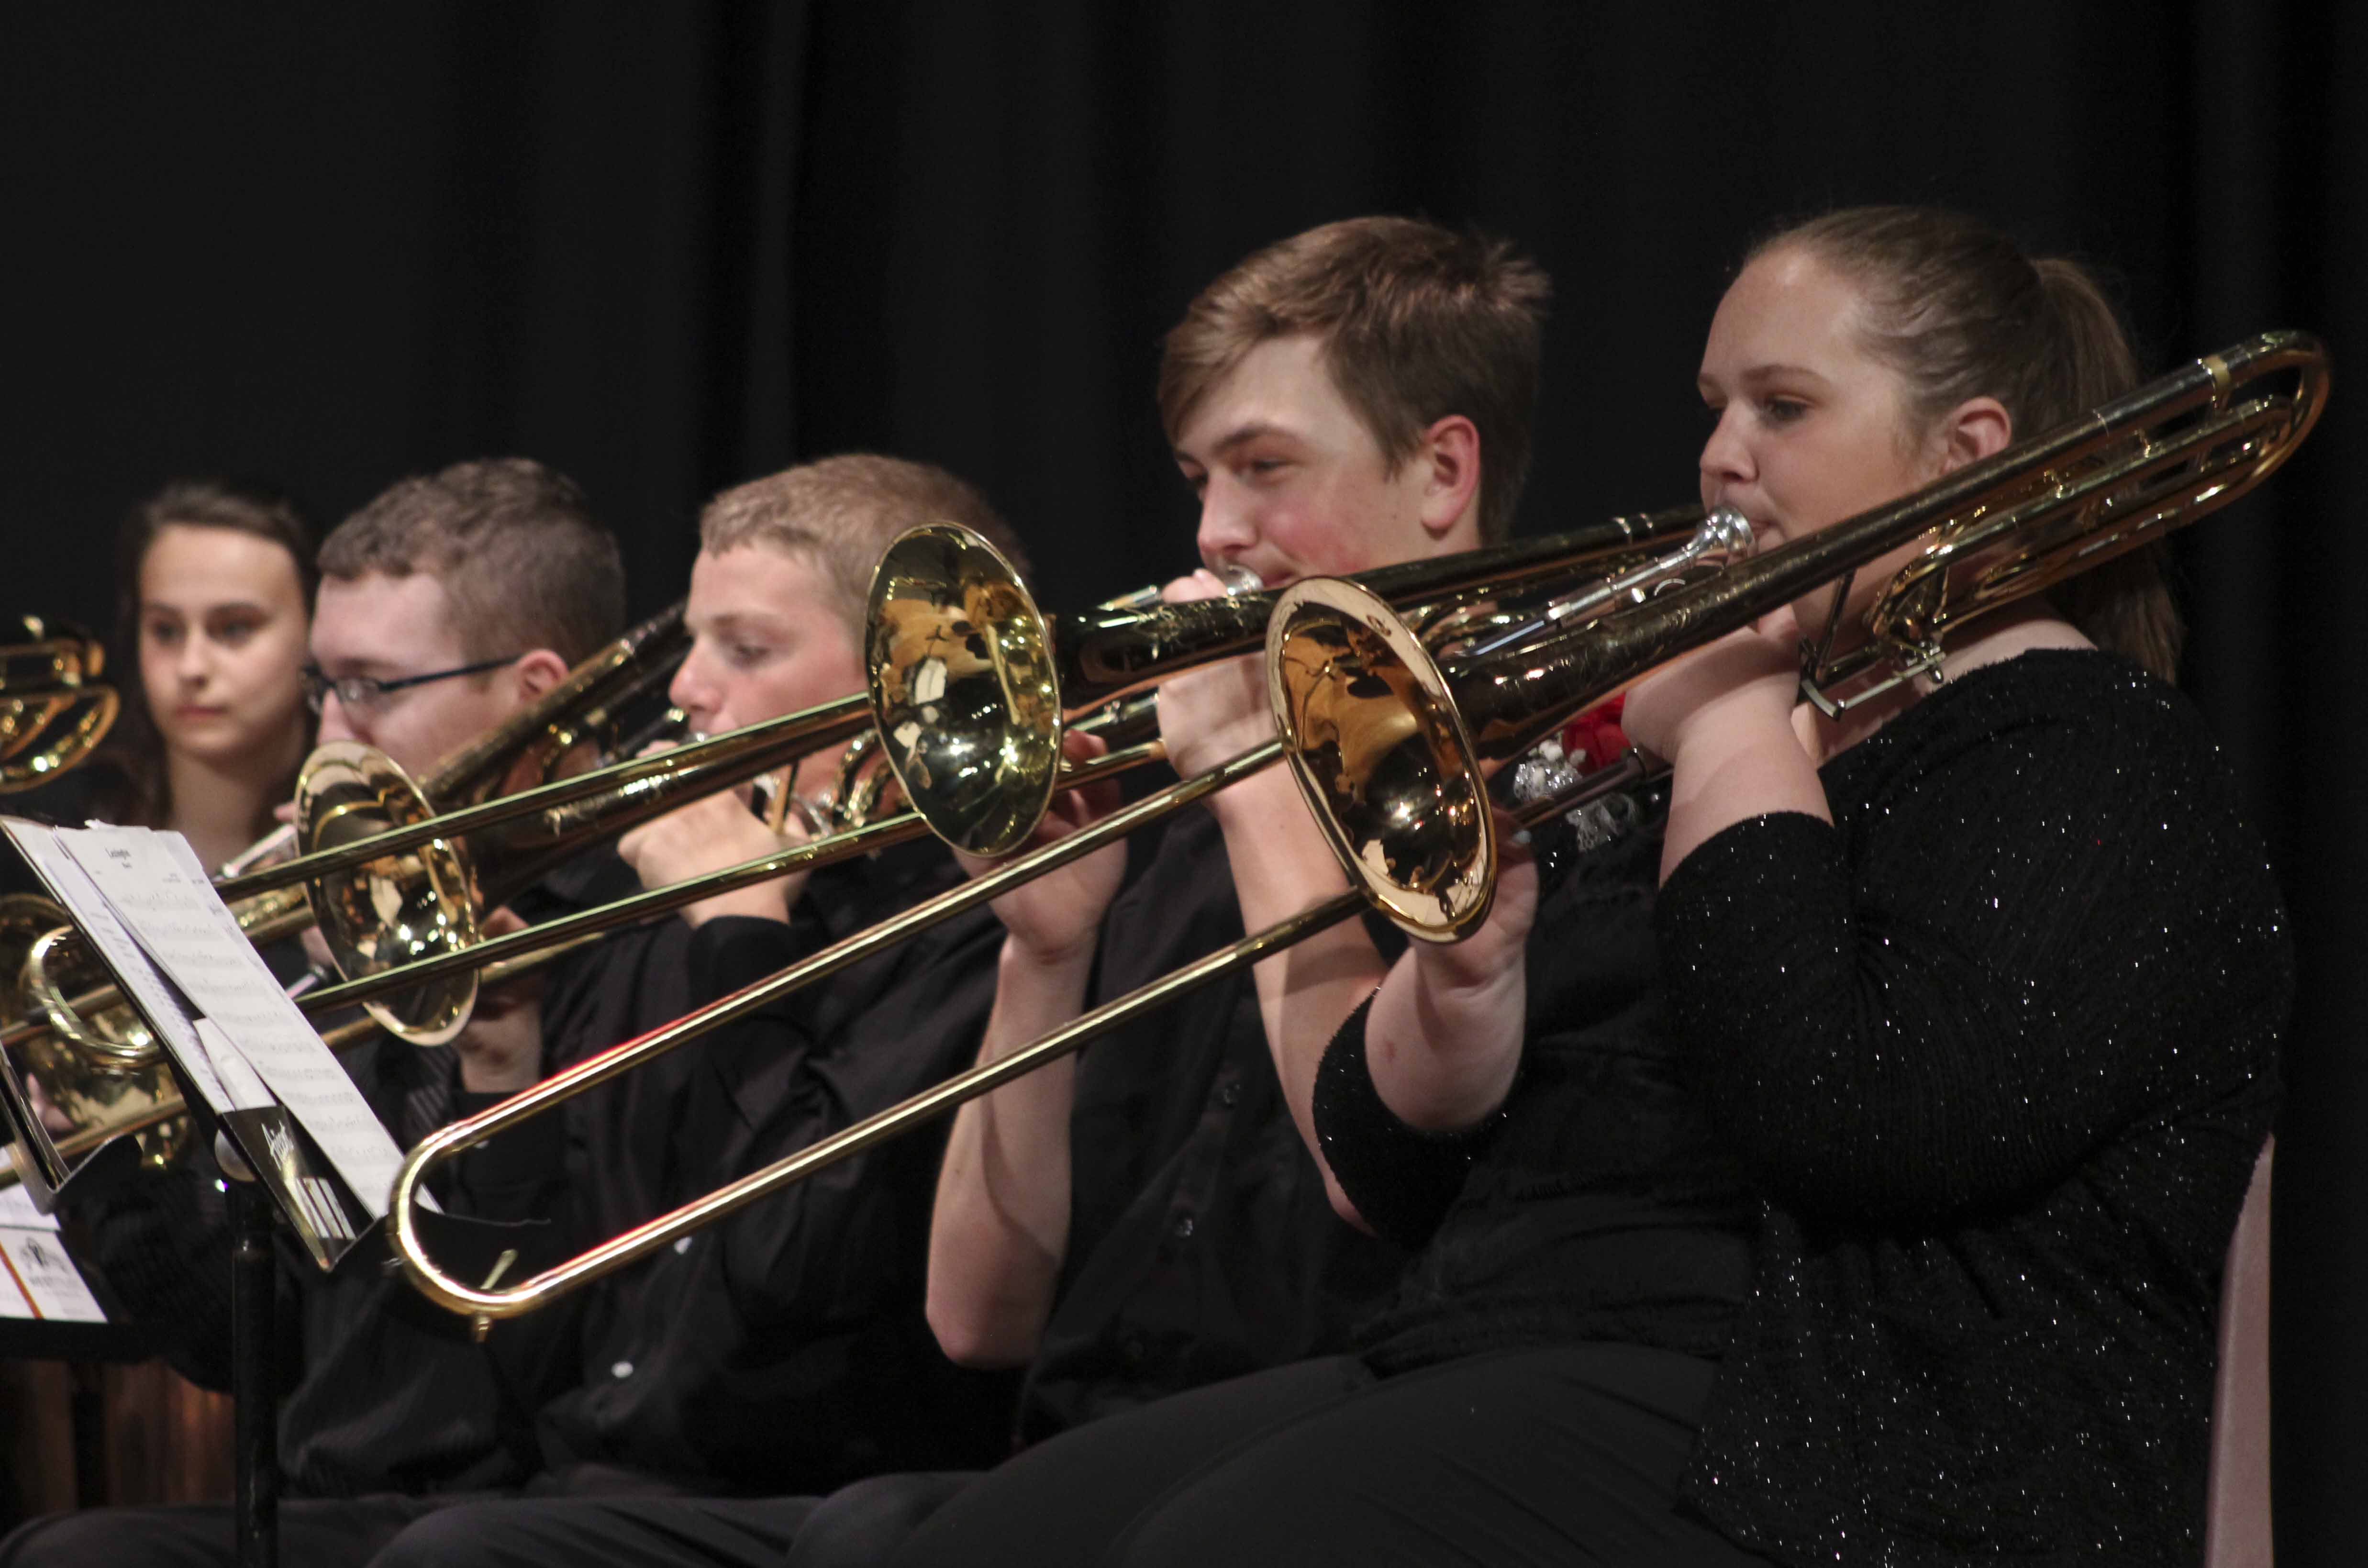 Trombone players (from foreground) Courtney Campbell, Jeff Carlson, Levi Temple and Gabe Wright perform during the IBA Preview Concert.